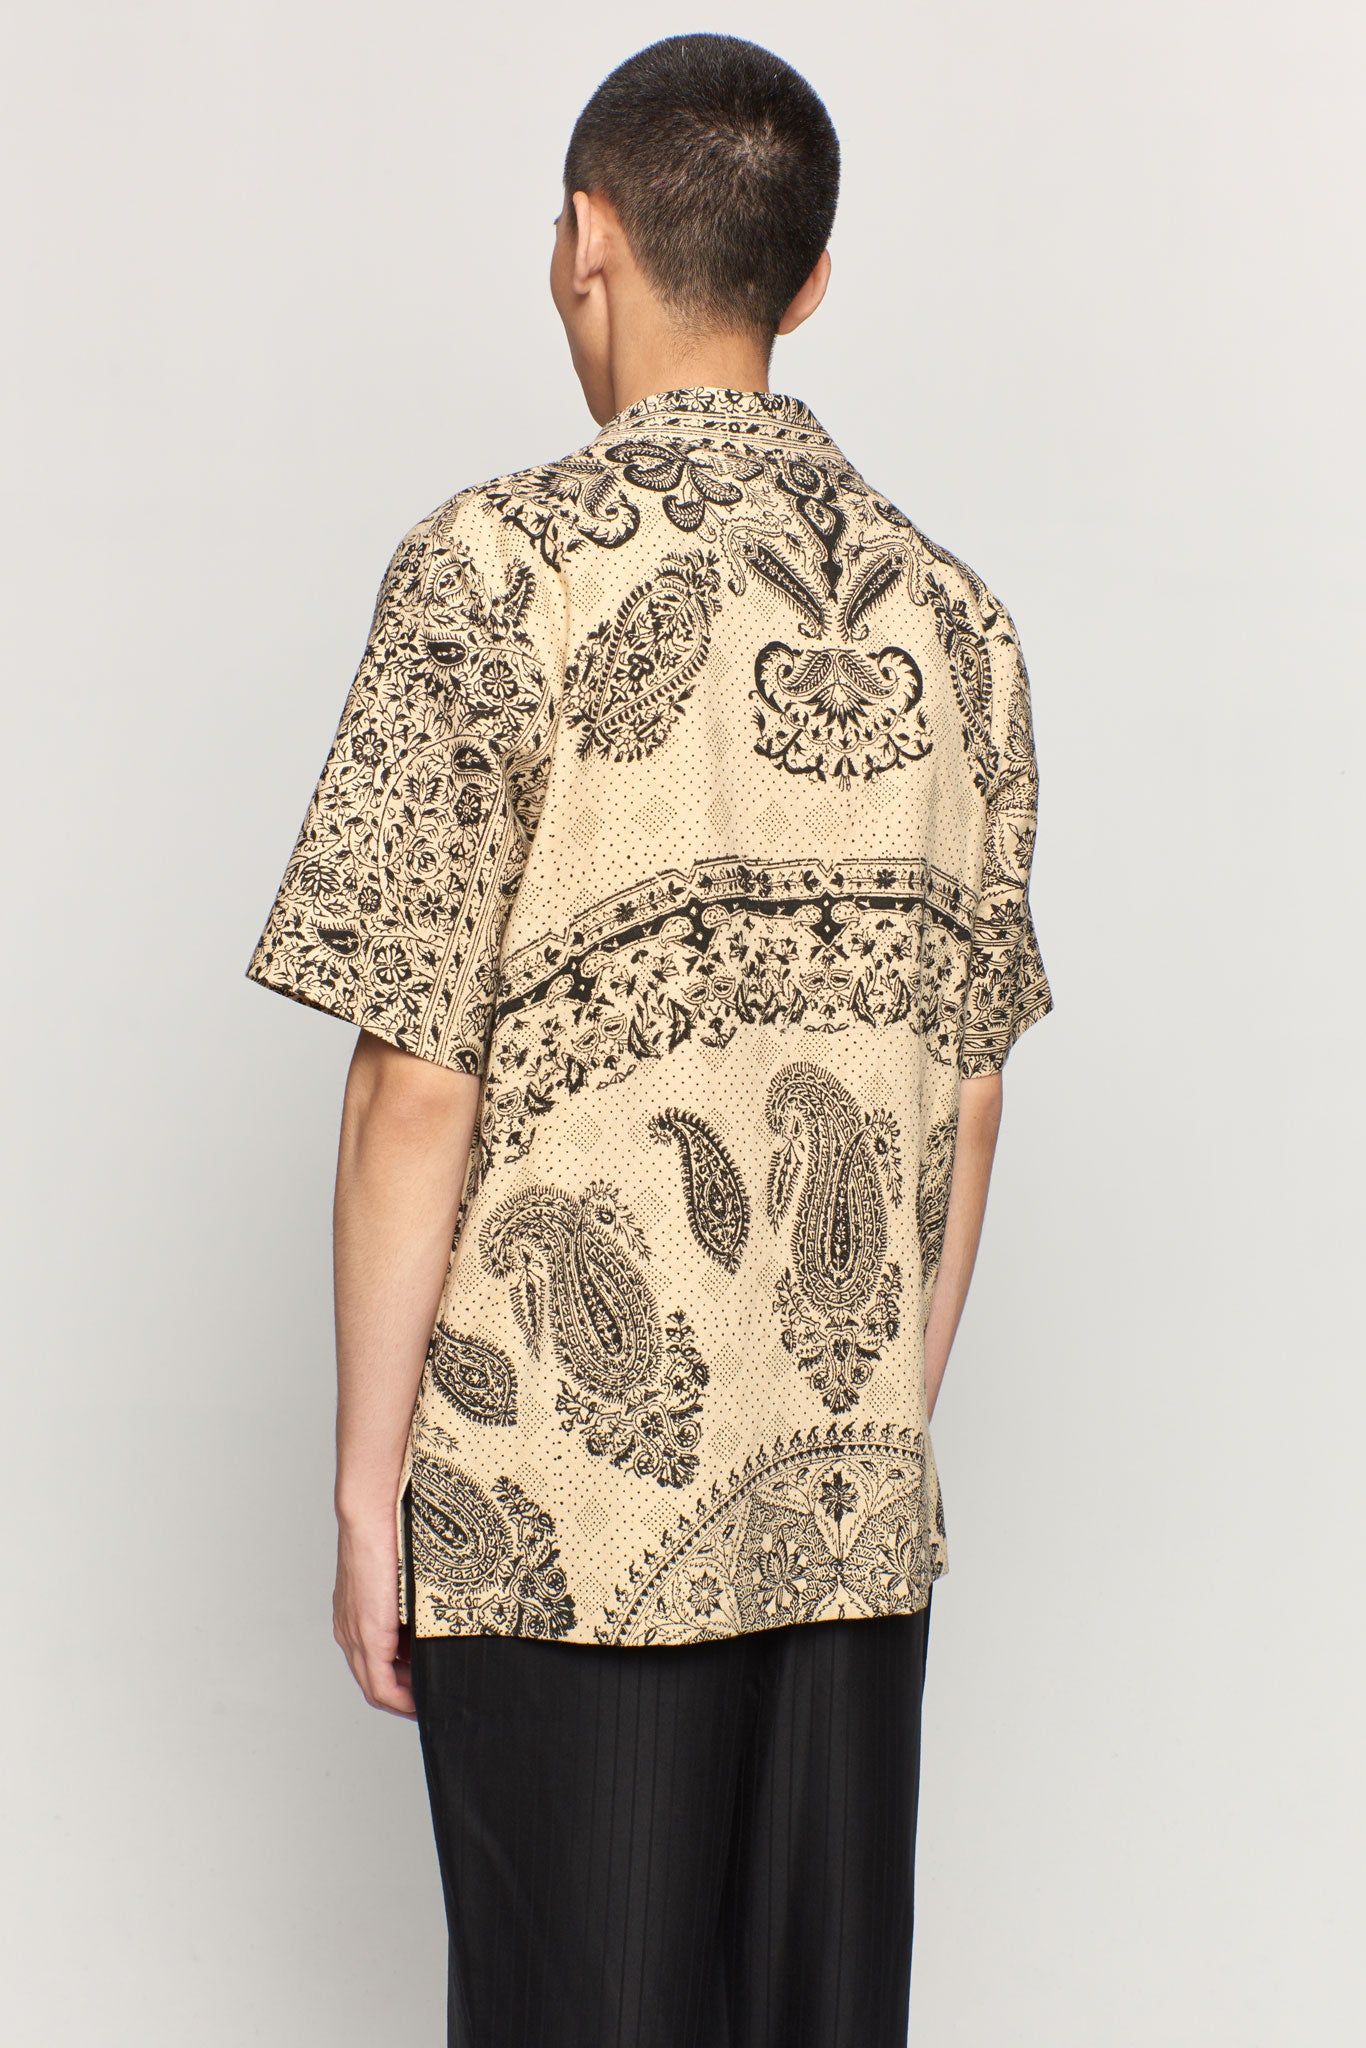 Monochrome Print Hawaiian Shirt